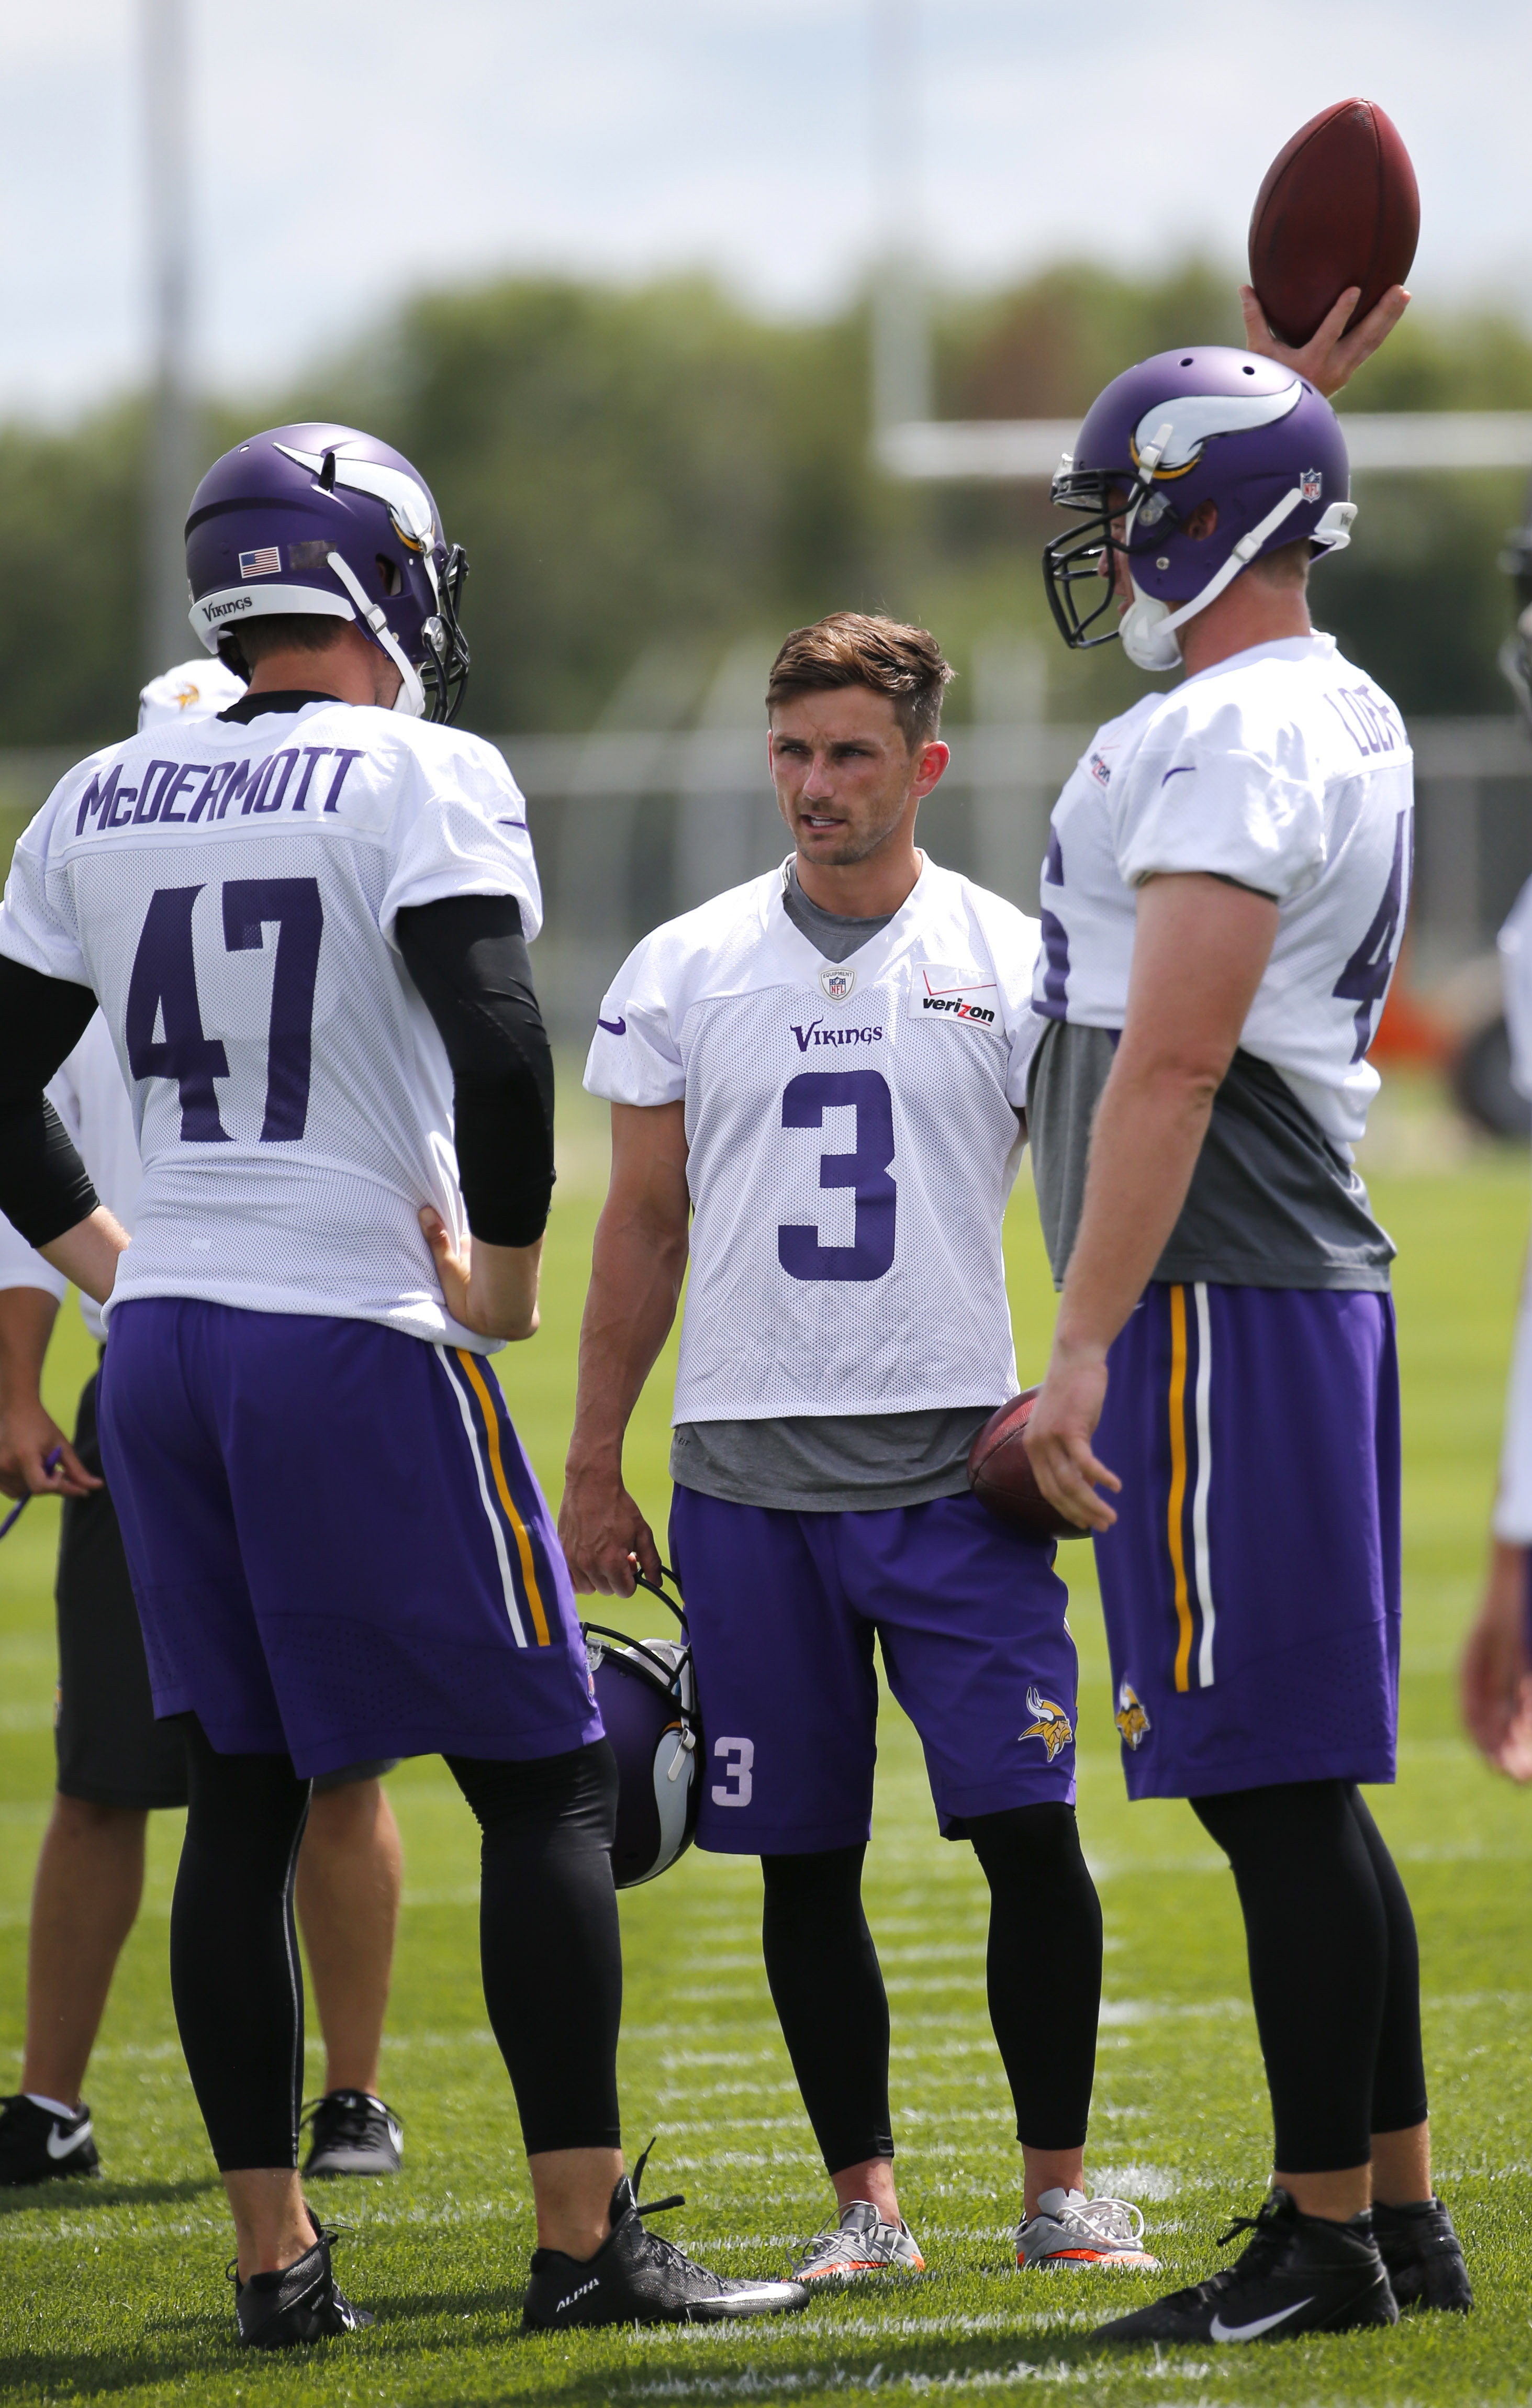 Minnesota Vikings kicker Blair Walsh (3) stands with teammates before an afternoon practice session at an NFL football training camp on the campus of Minnesota State University, Sunday, July 26, 2015, in Mankato, Minn. The Vikings announced Sunday that Wa